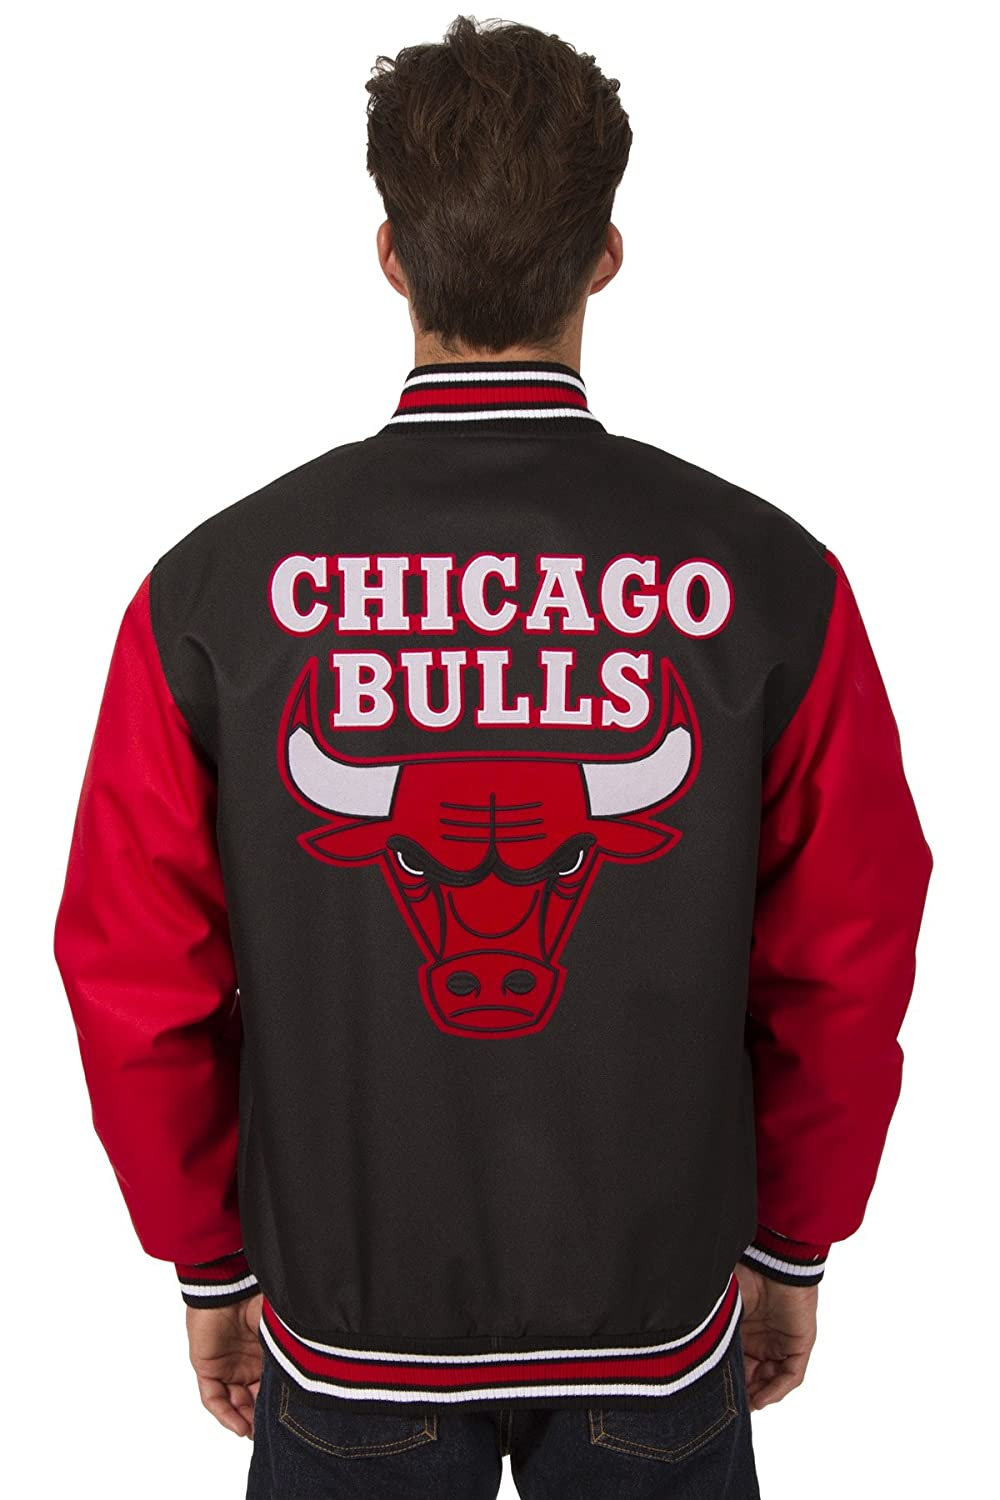 c8a9916d02fb Amazon.com: J.H. Design Chicago Bulls NBA Jacket Poly-Twill Black Red with  Embroidered Logos: Clothing